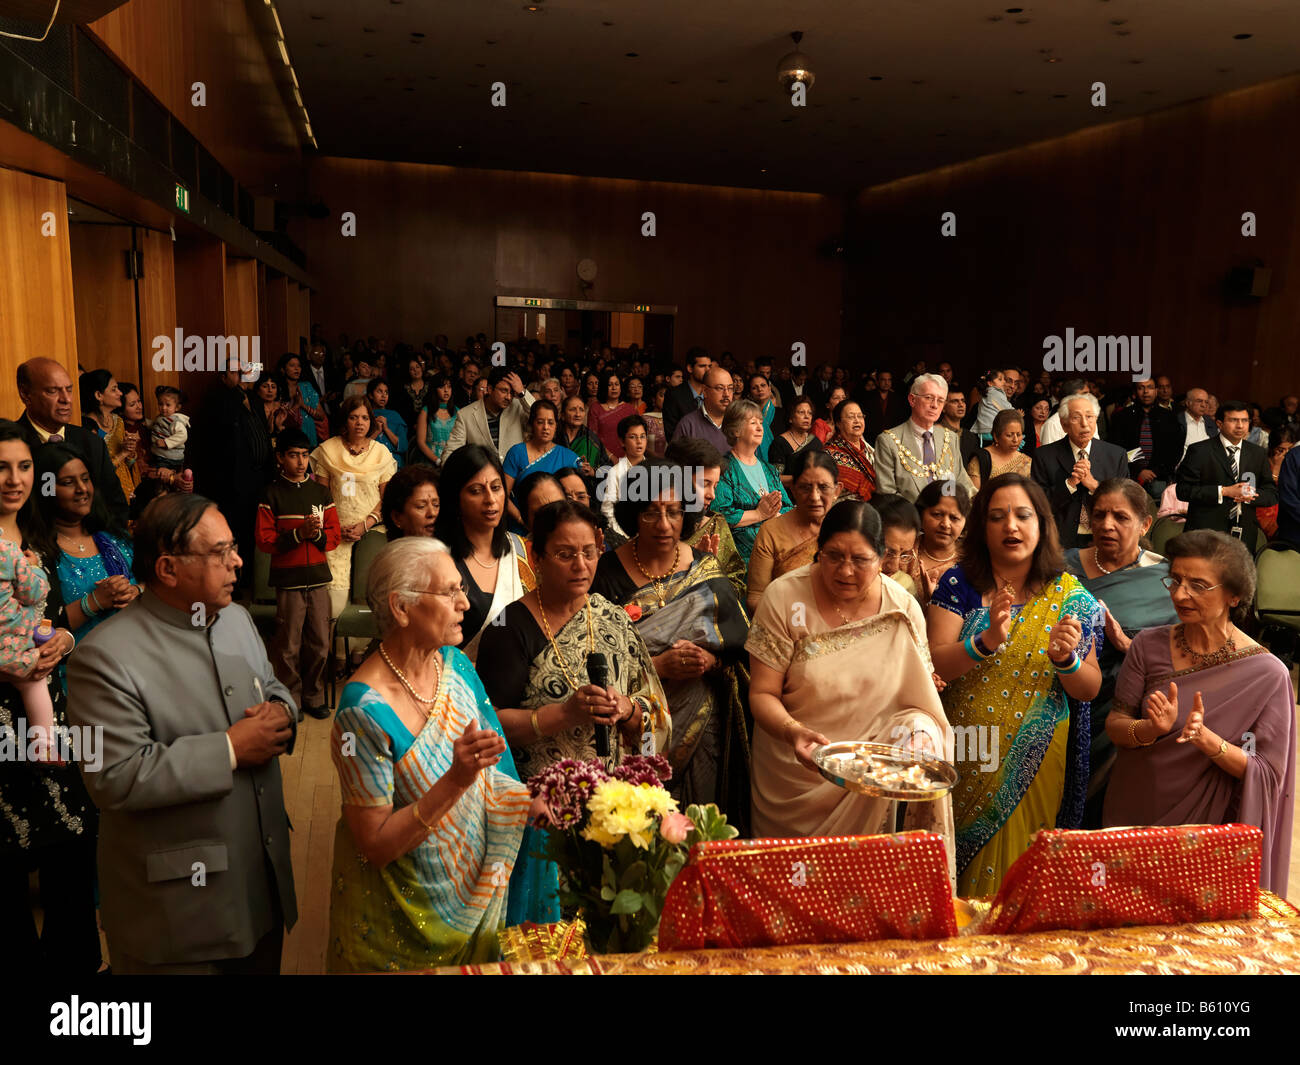 Arti and Audience at Diwali Celebrations Wandsworth Town Hall - Stock Image